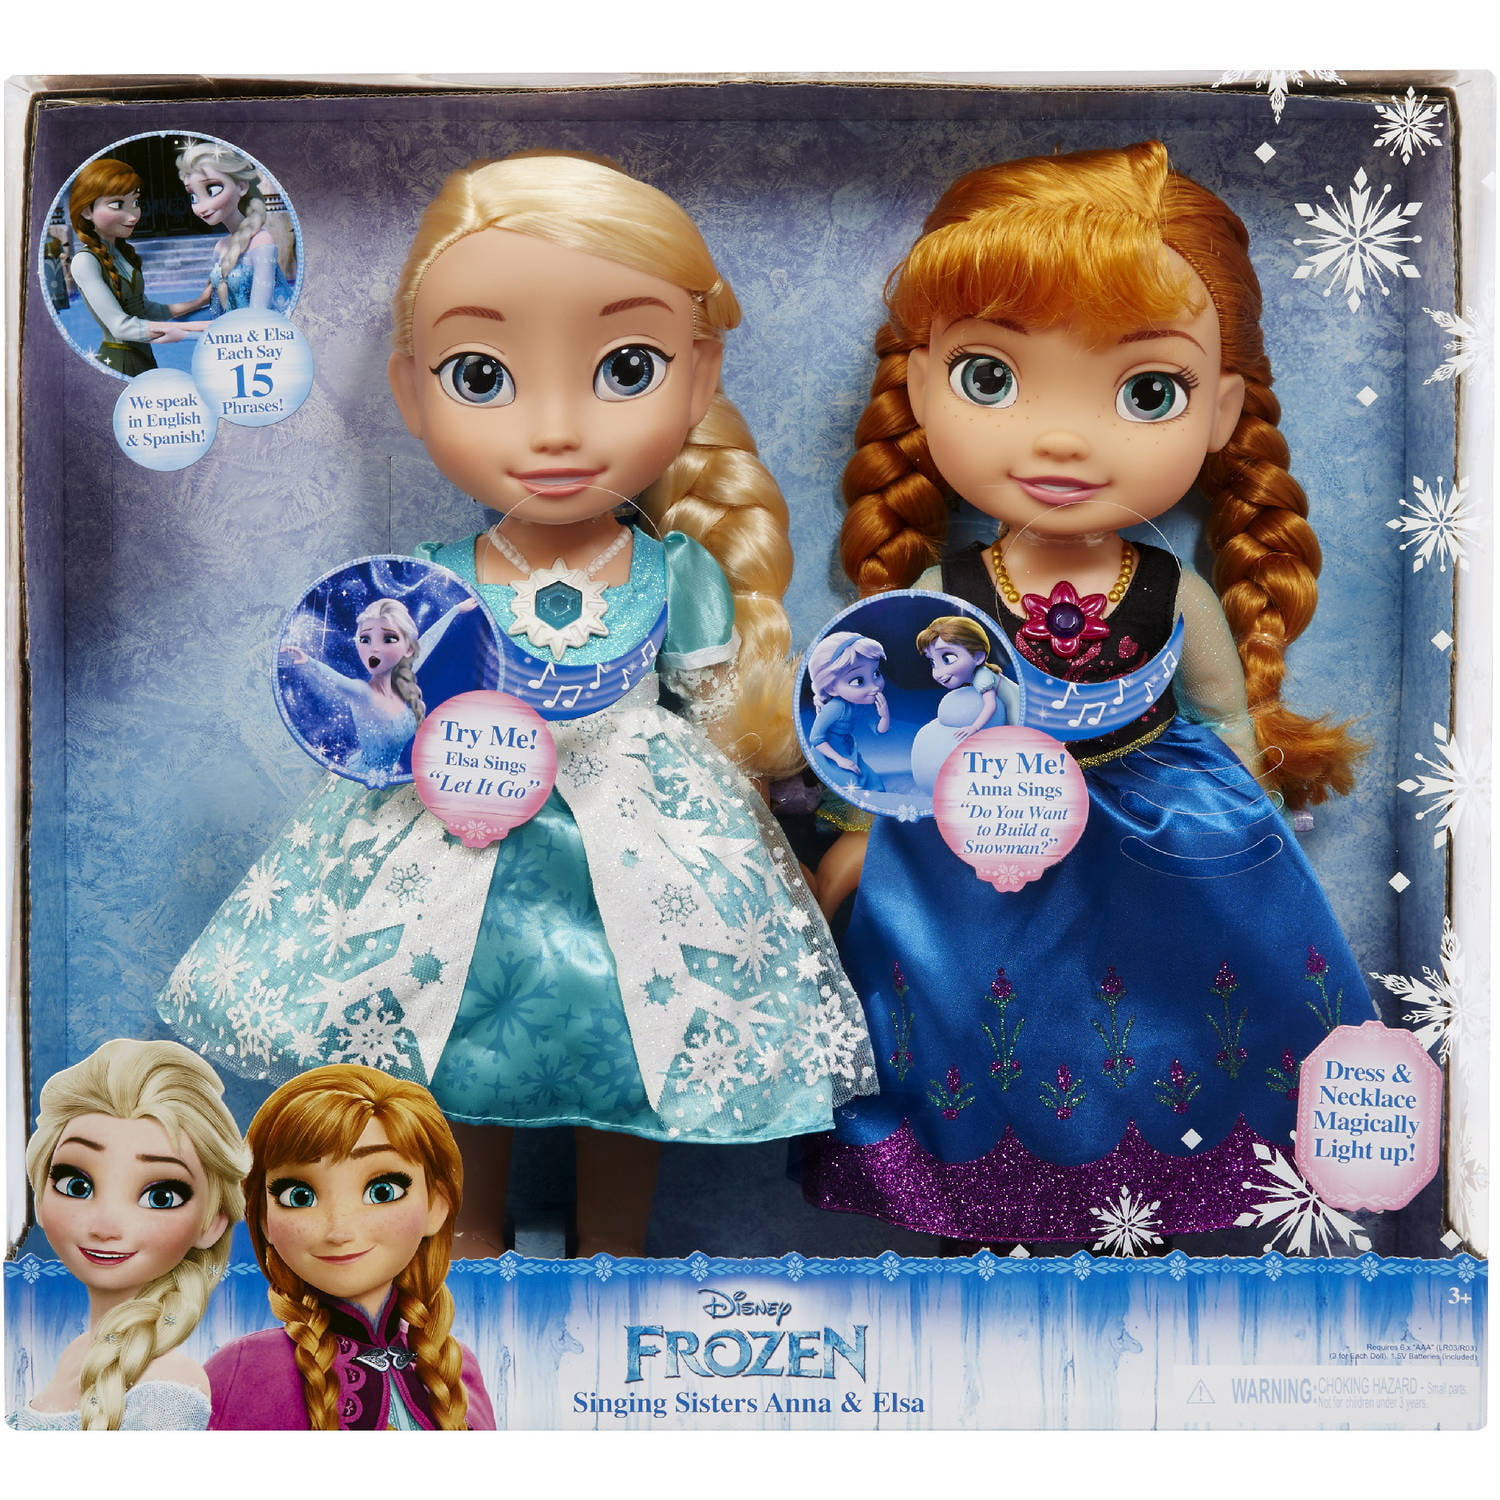 Disney Frozen Singing Sisters Elsa and Anna Dolls (Exclusive) by Jakks Pacific